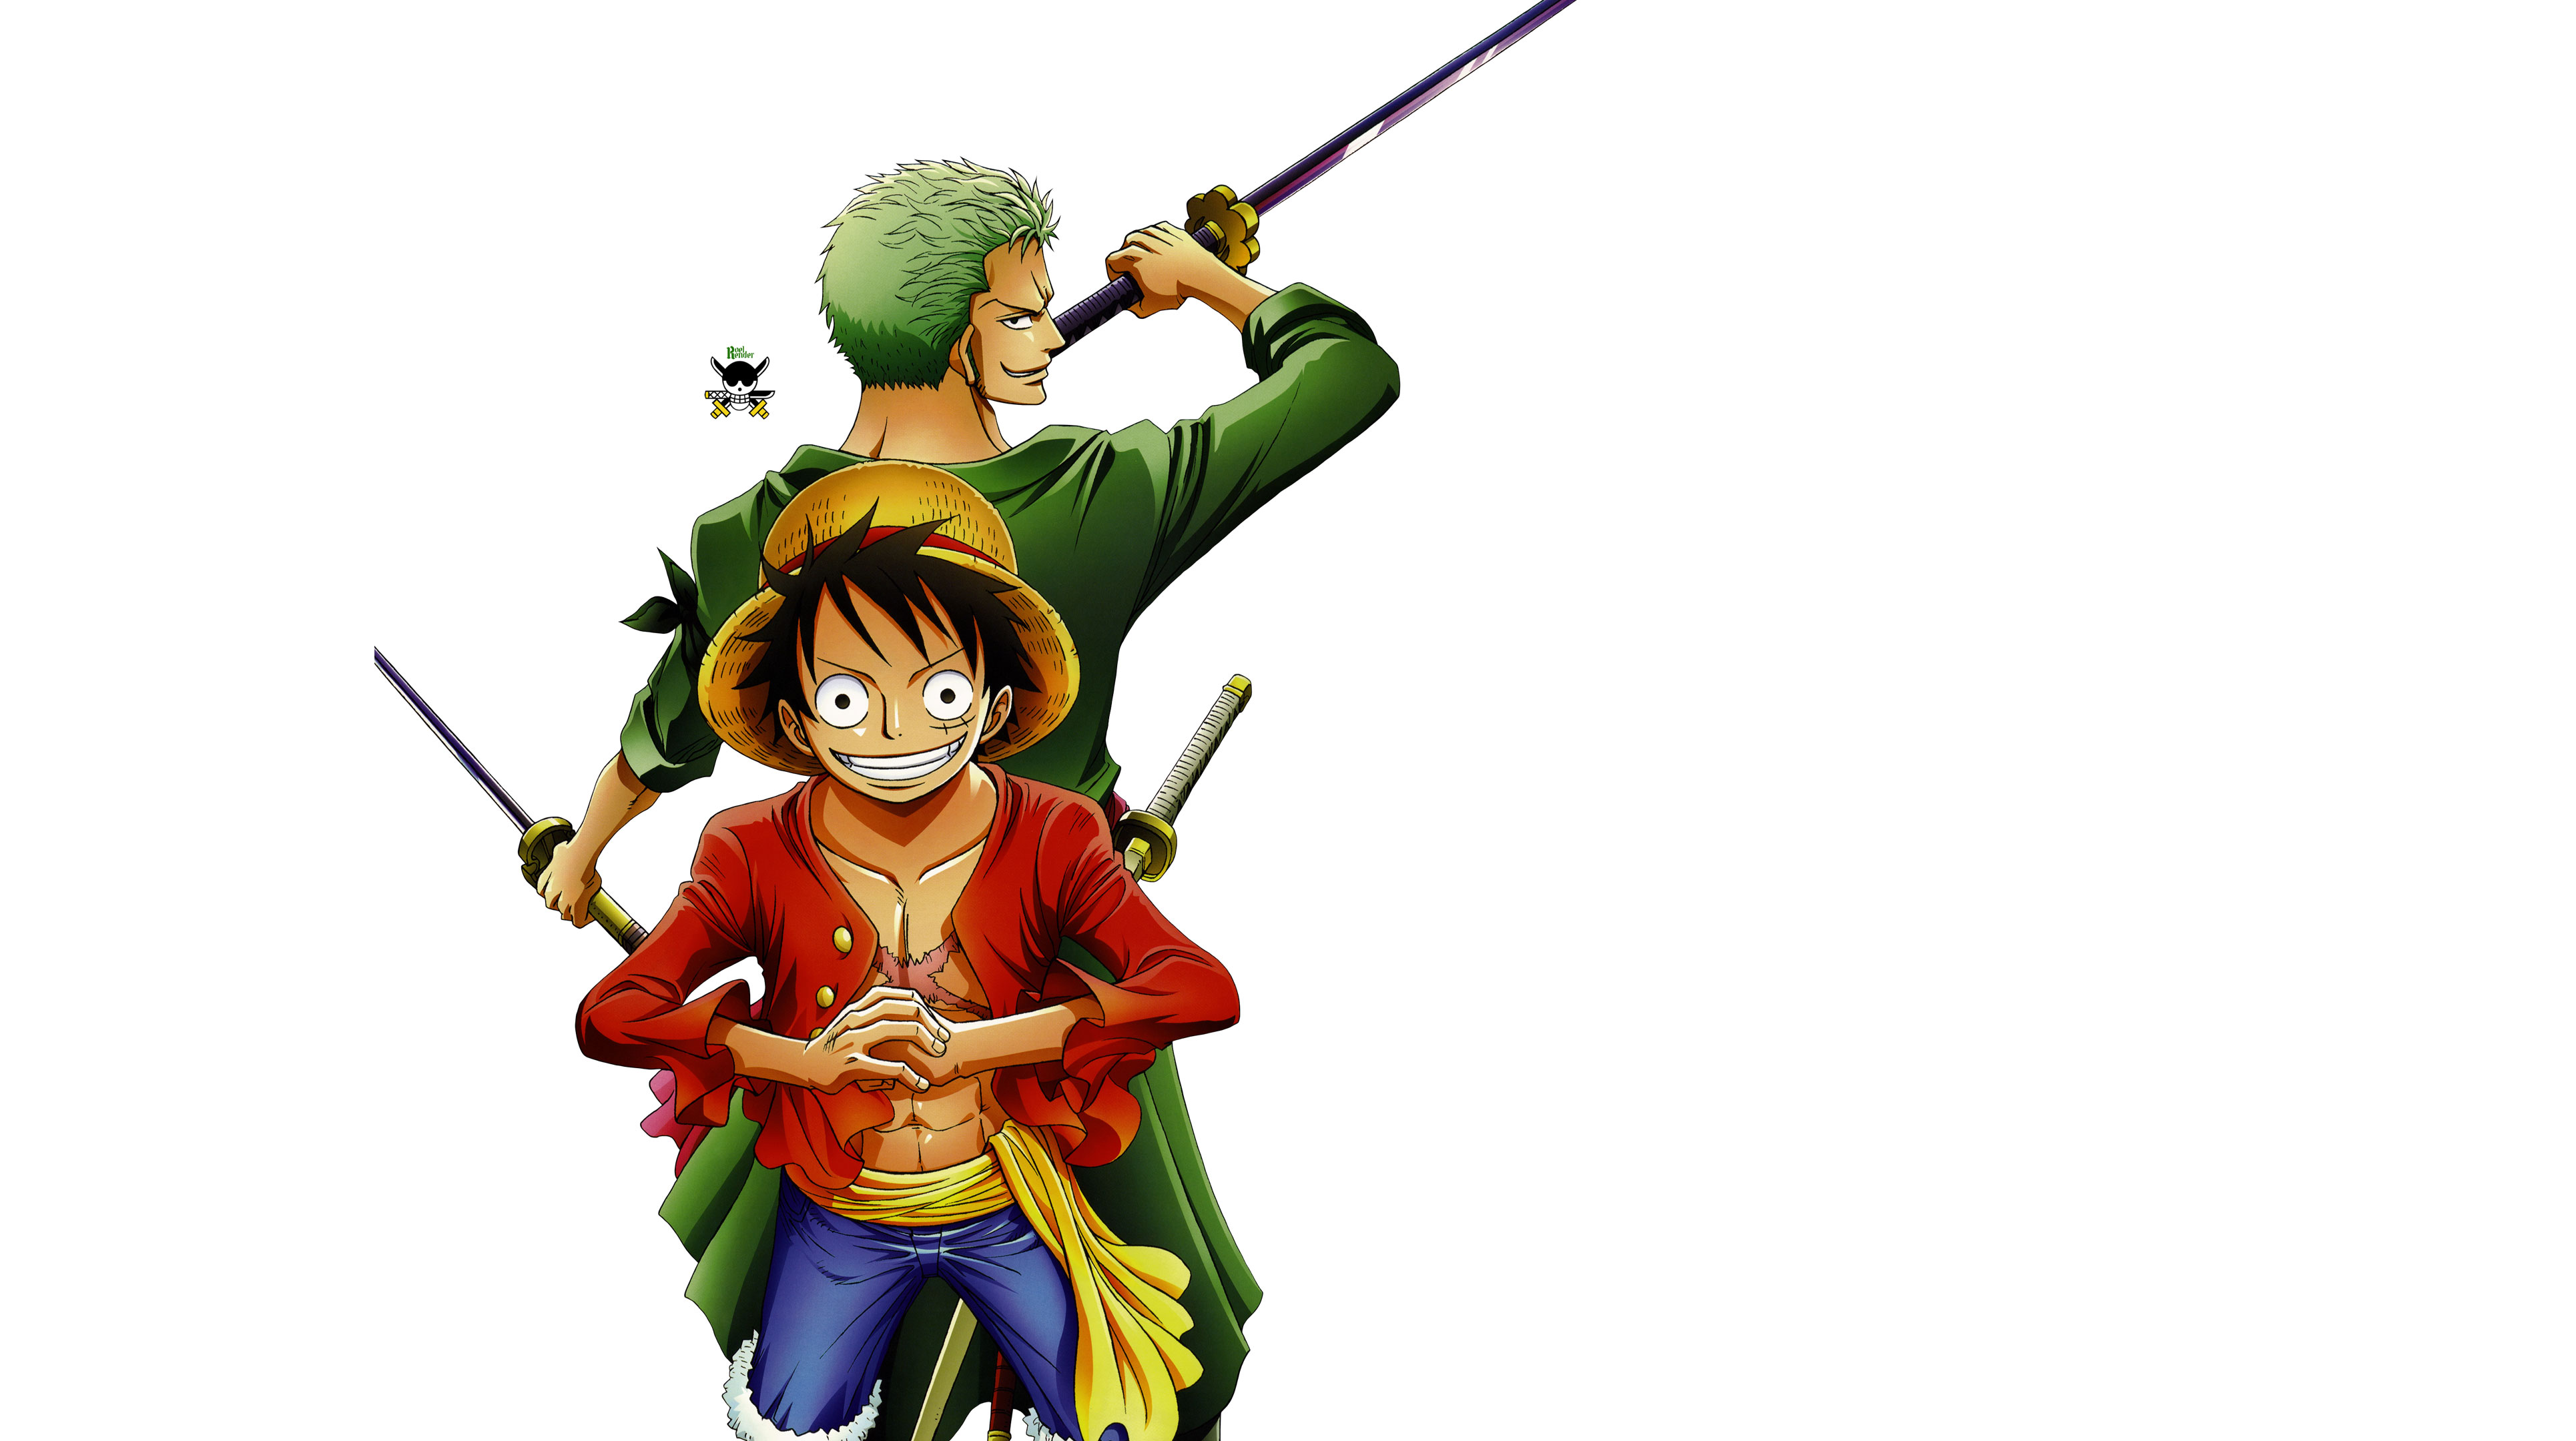 Luffy And Zoro   One Piece pictures 3860x2160